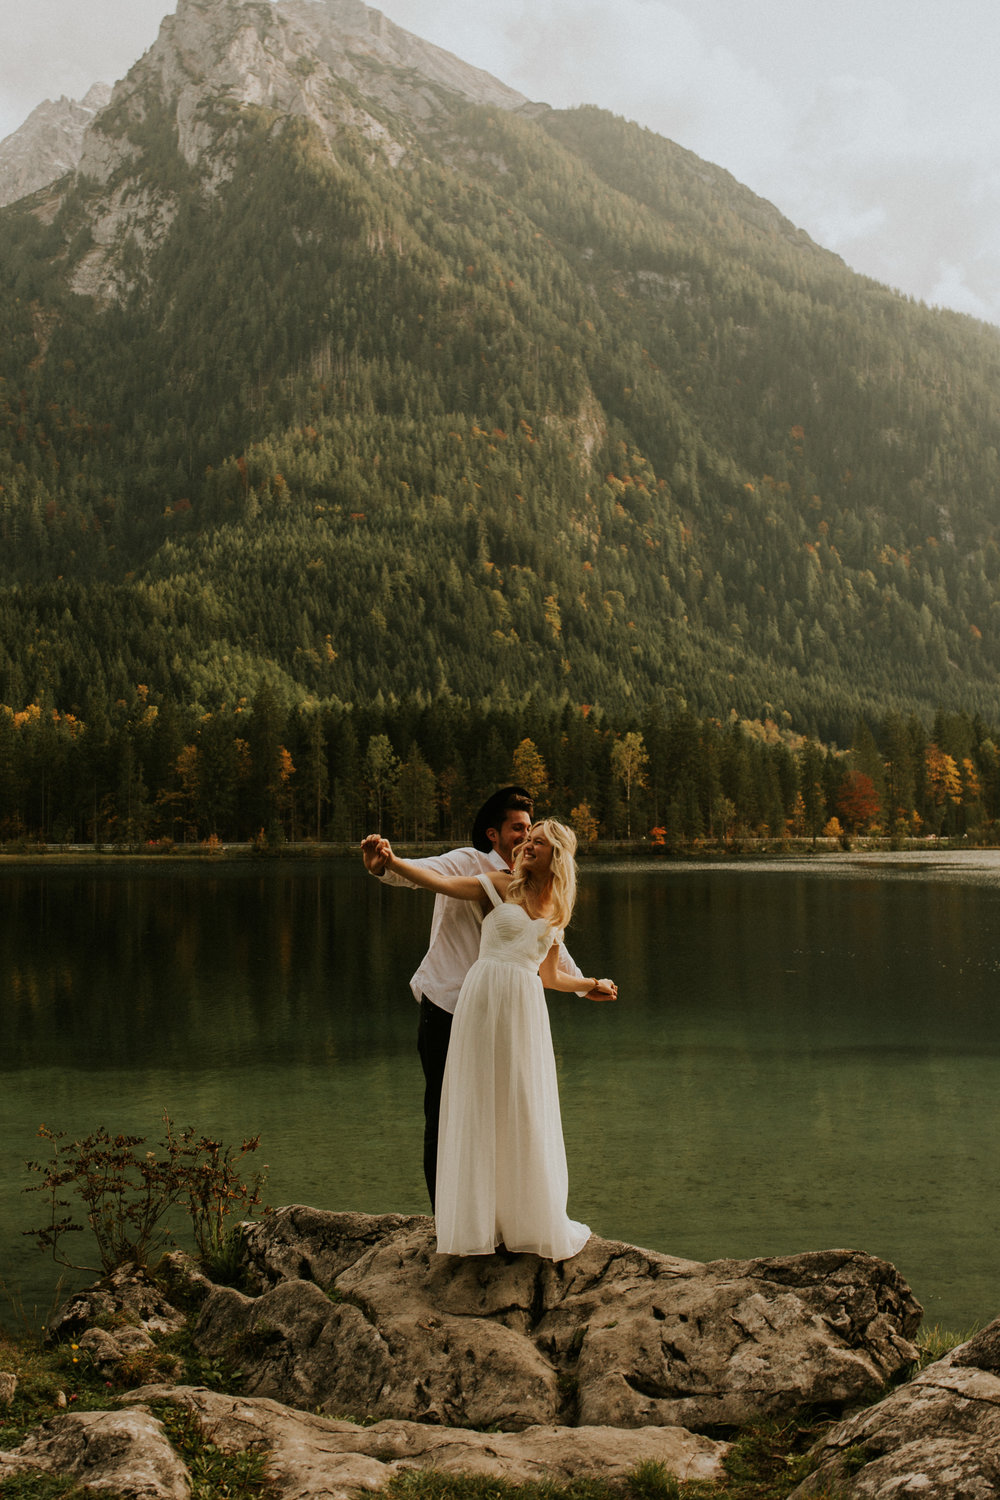 Best-Austria-hintersee-elopement-photography-breeanna-lasher